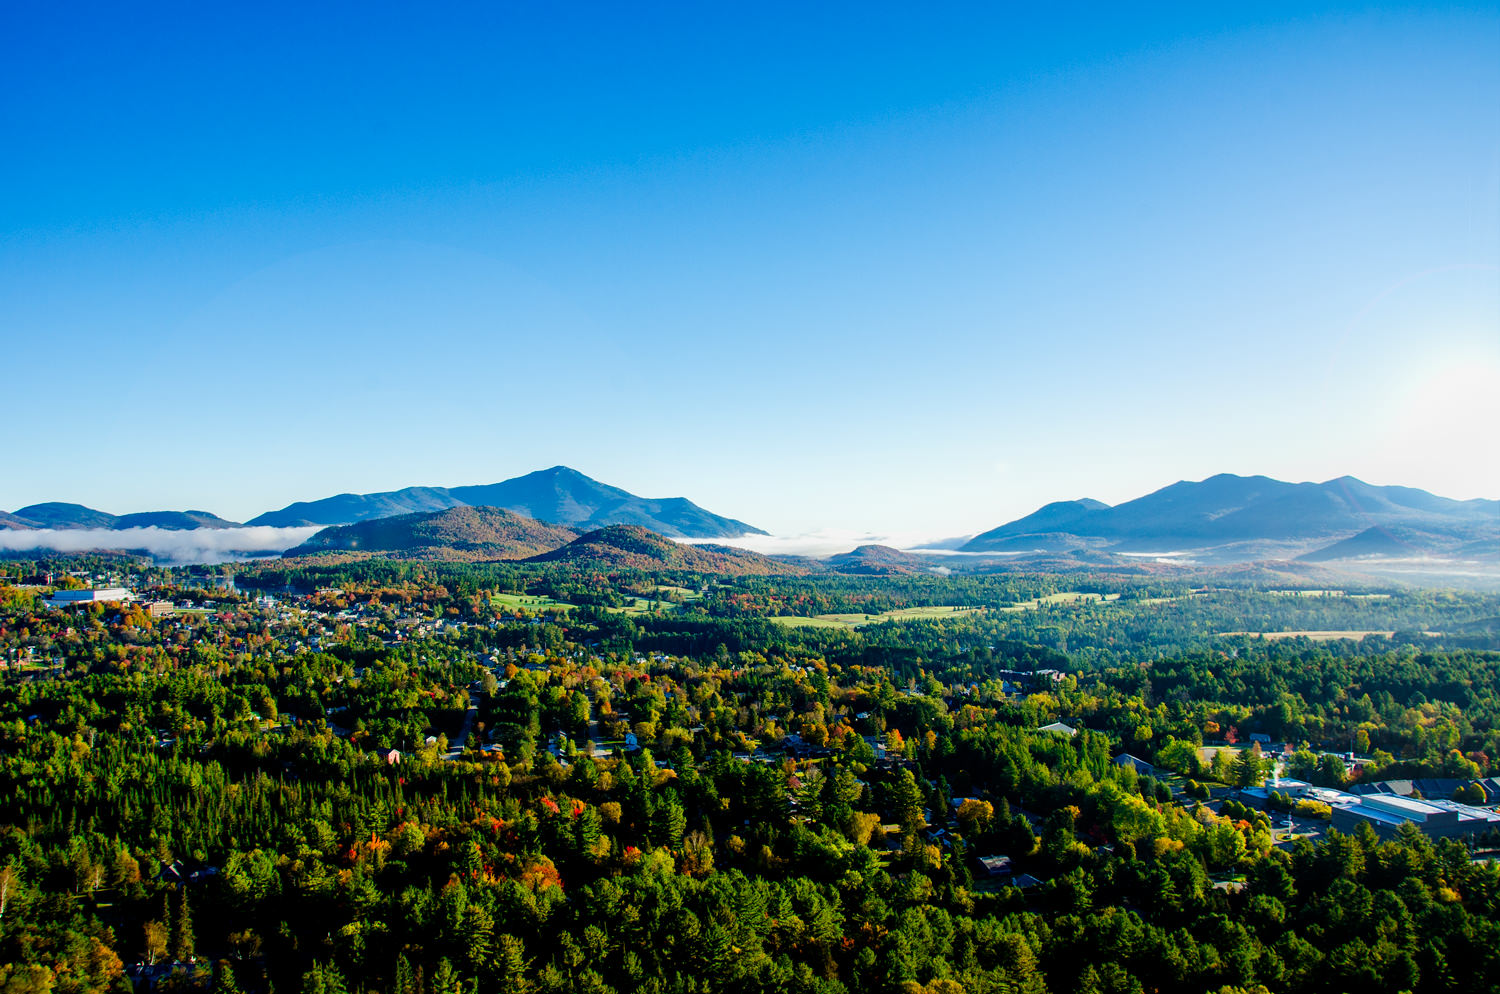 Lake-Placid-from-the-air.jpg